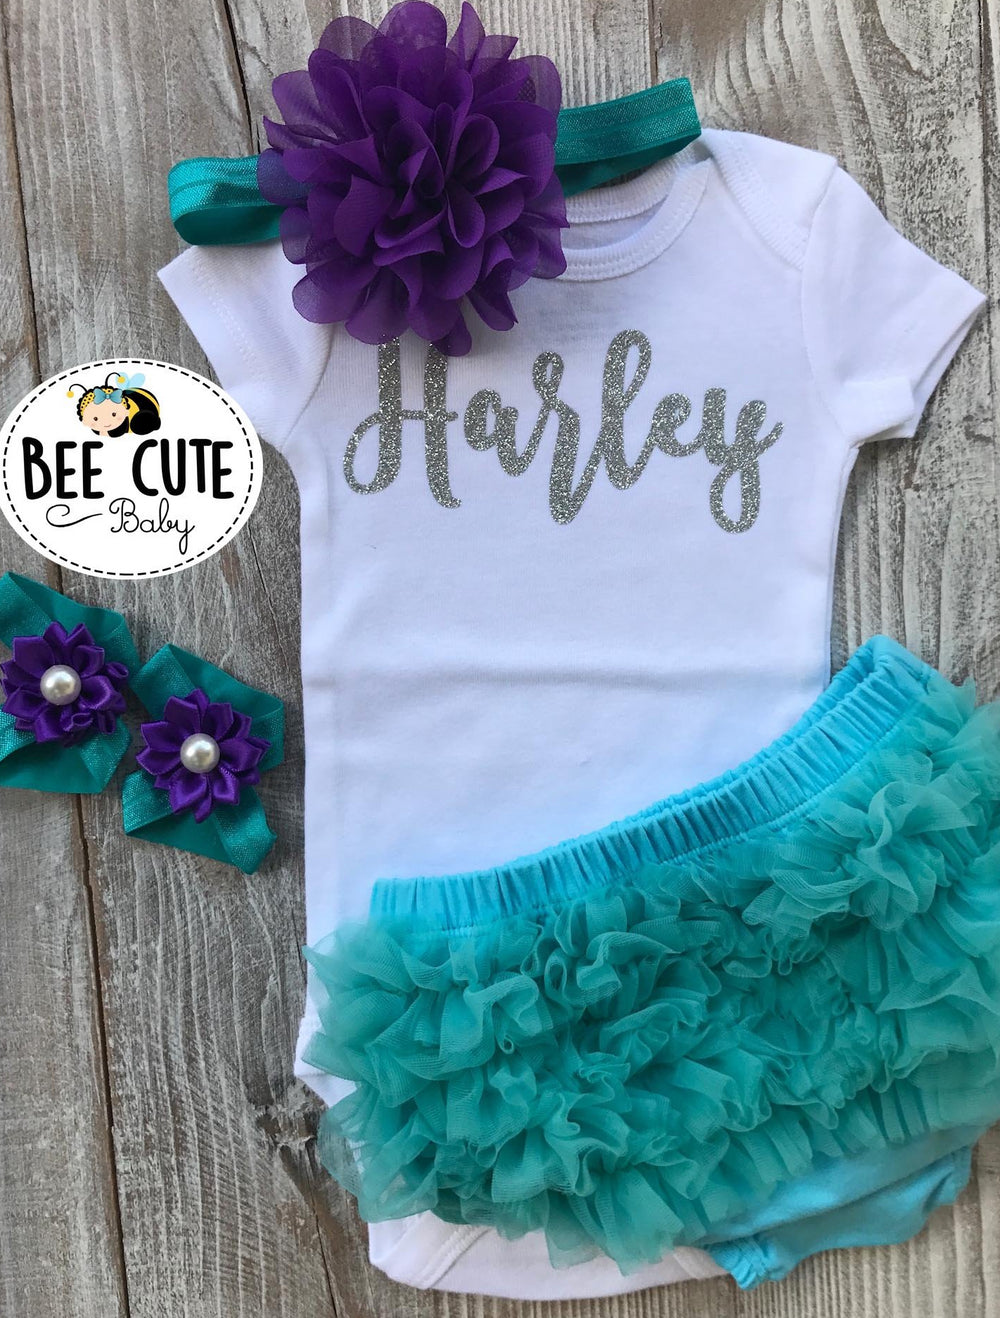 Personalized take home Baby outfit - beecutebaby